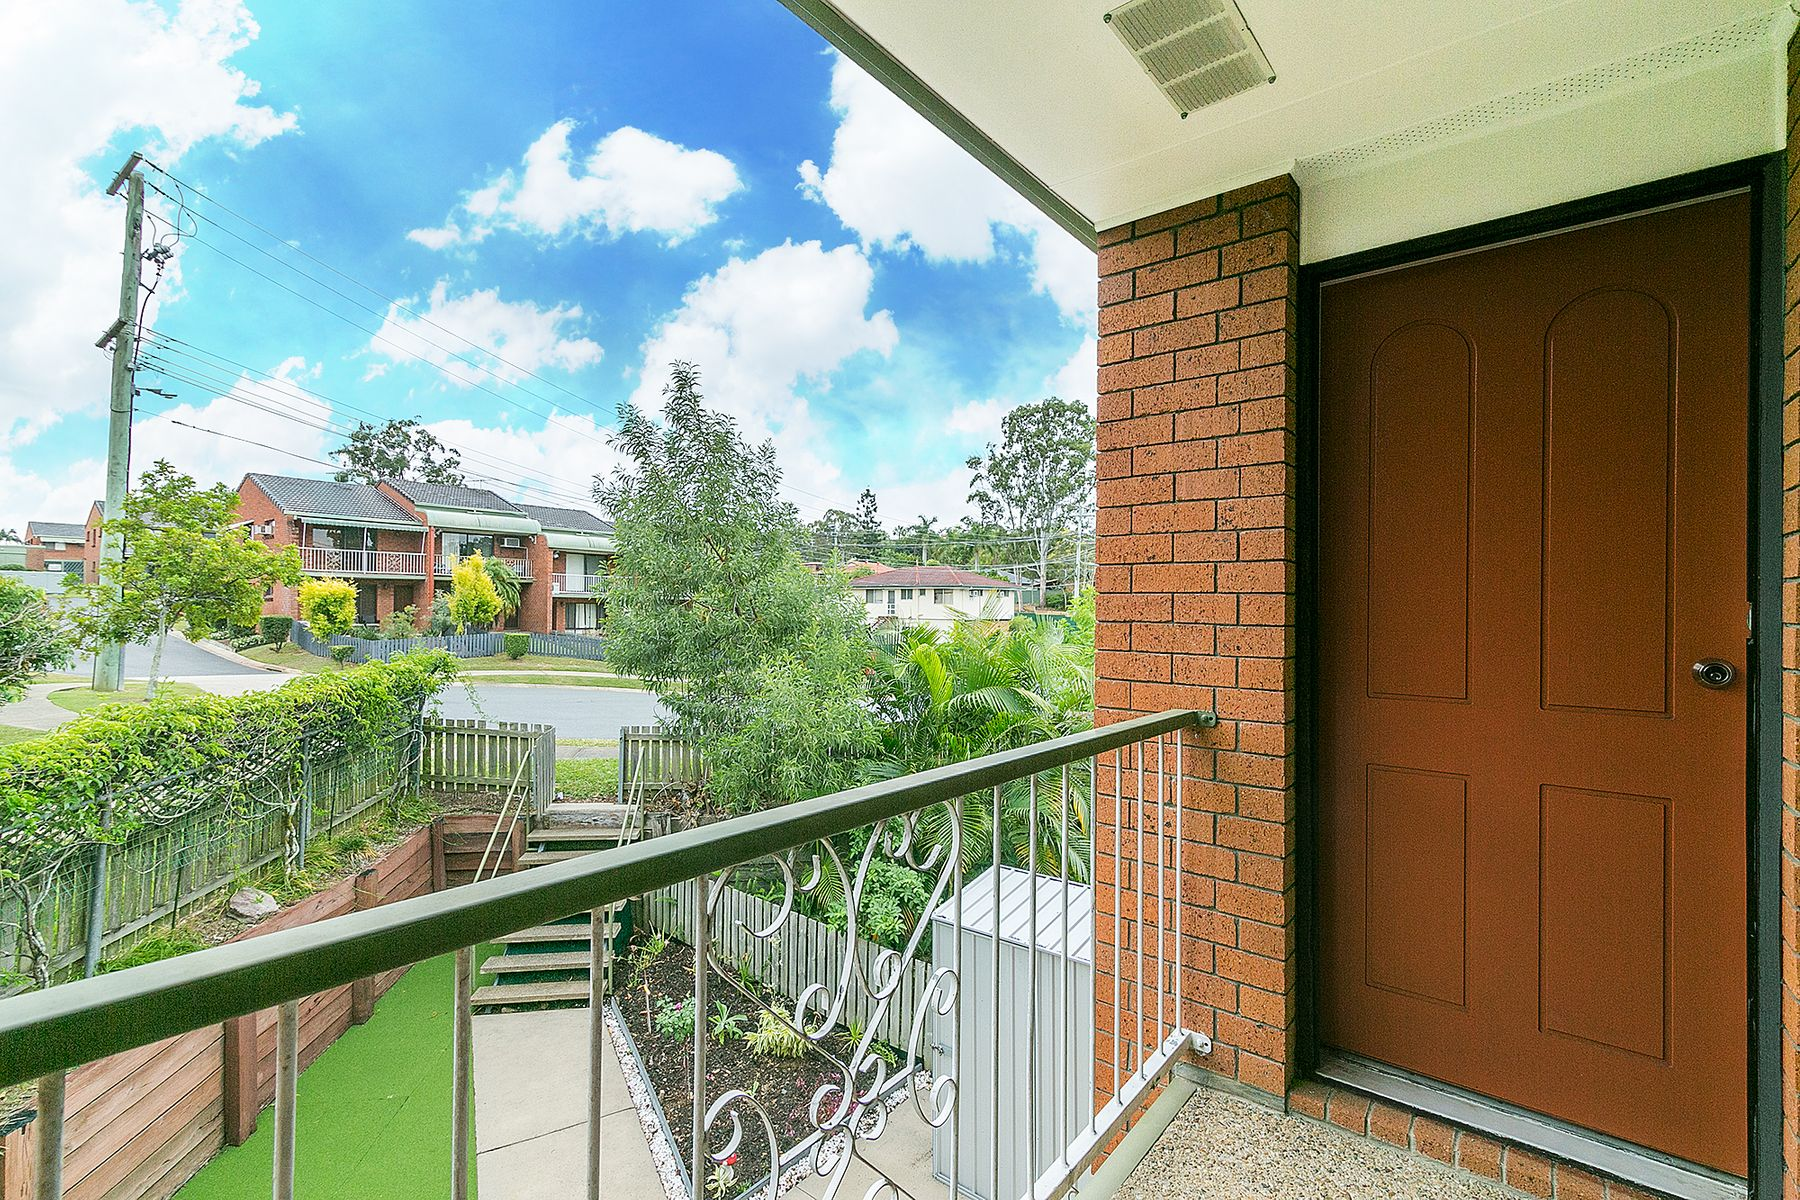 4/4 Amie Court, Springwood, QLD 4127